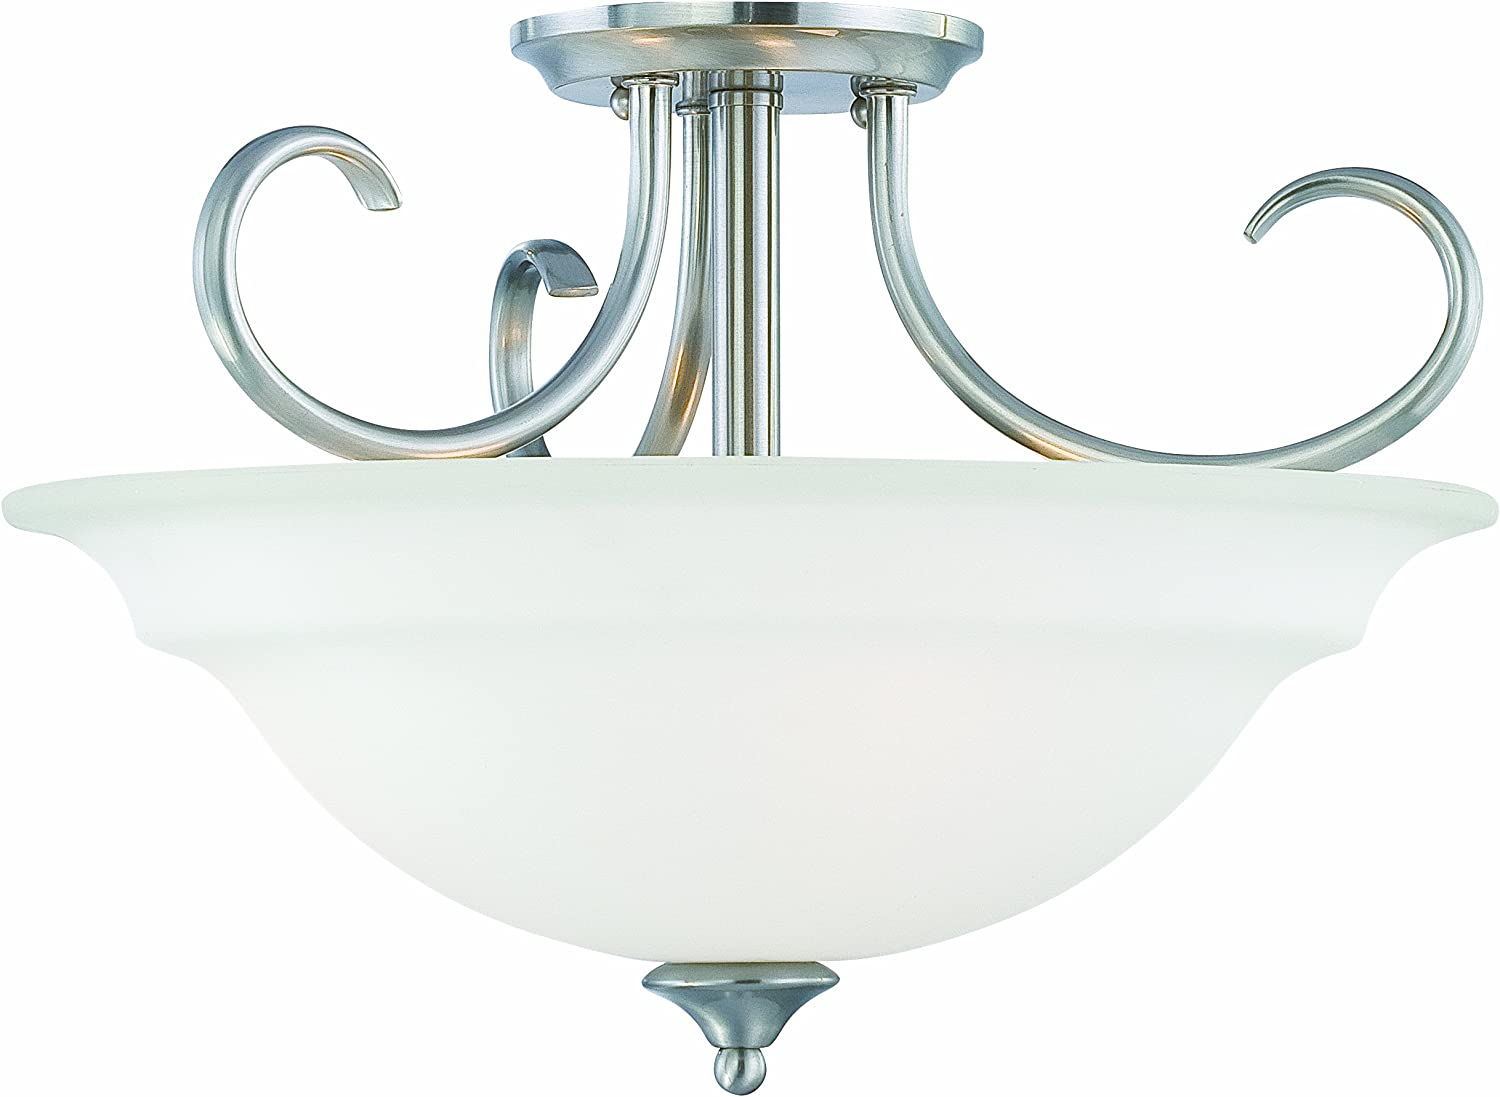 Thomas Lighting SL860778 Bella Collection 3 Light Convertible Semi-Flush Ceiling Light, Brushed Nickel